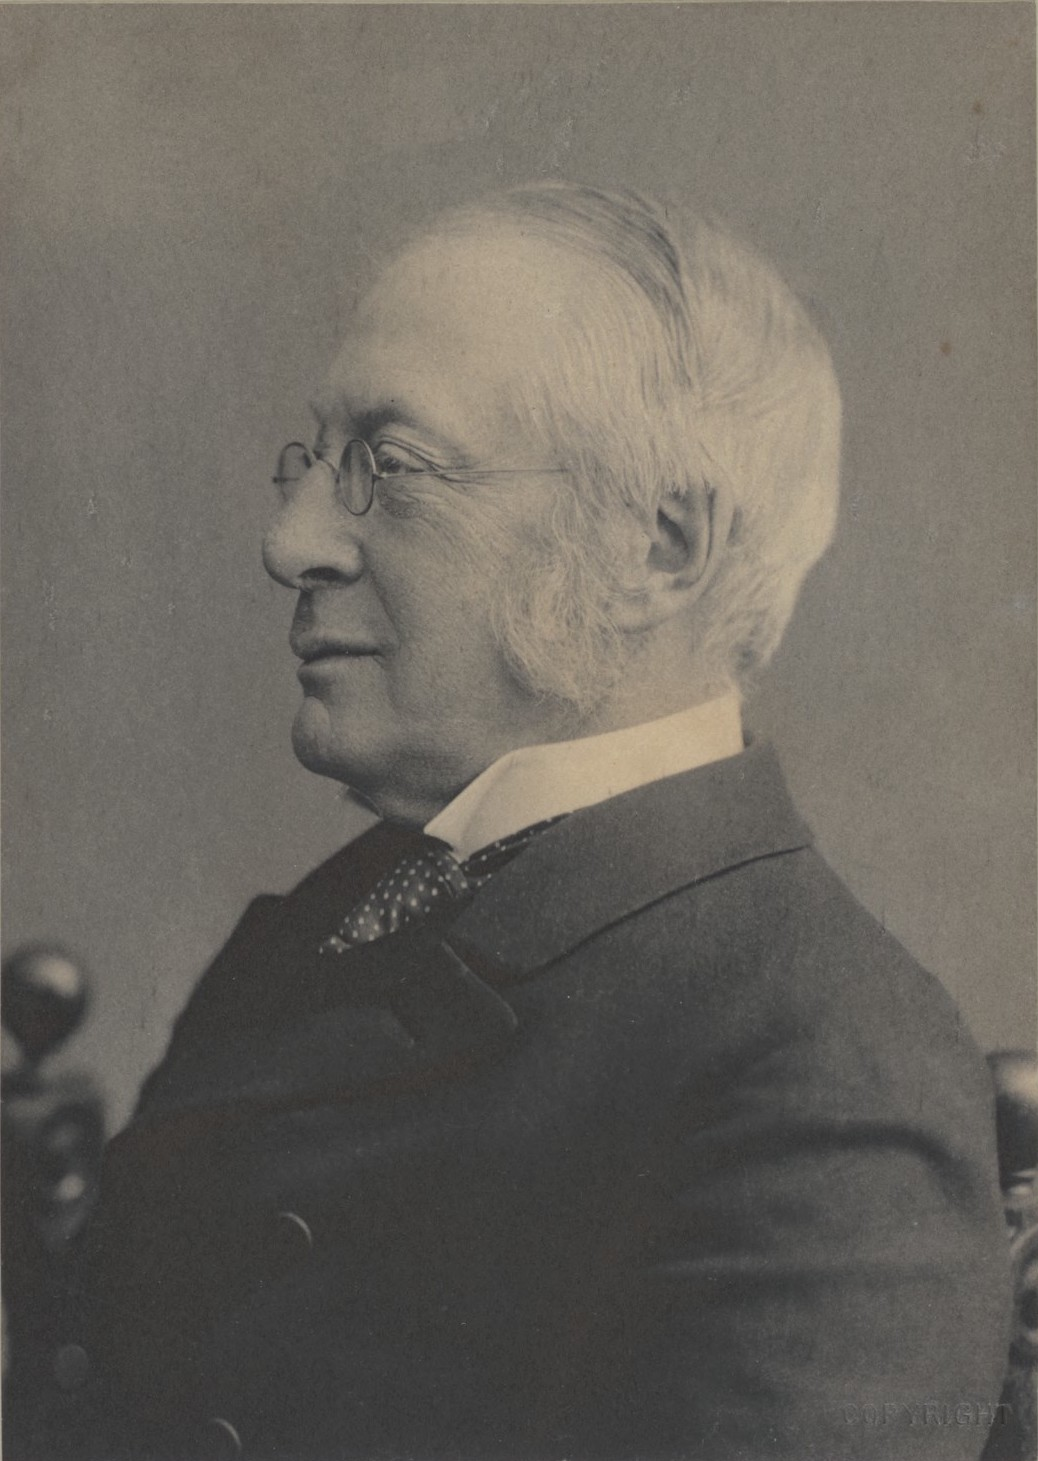 Selected as Harvard's president in 1859, Charles W. Eliot '52 holds the record for the longest-serving University president.